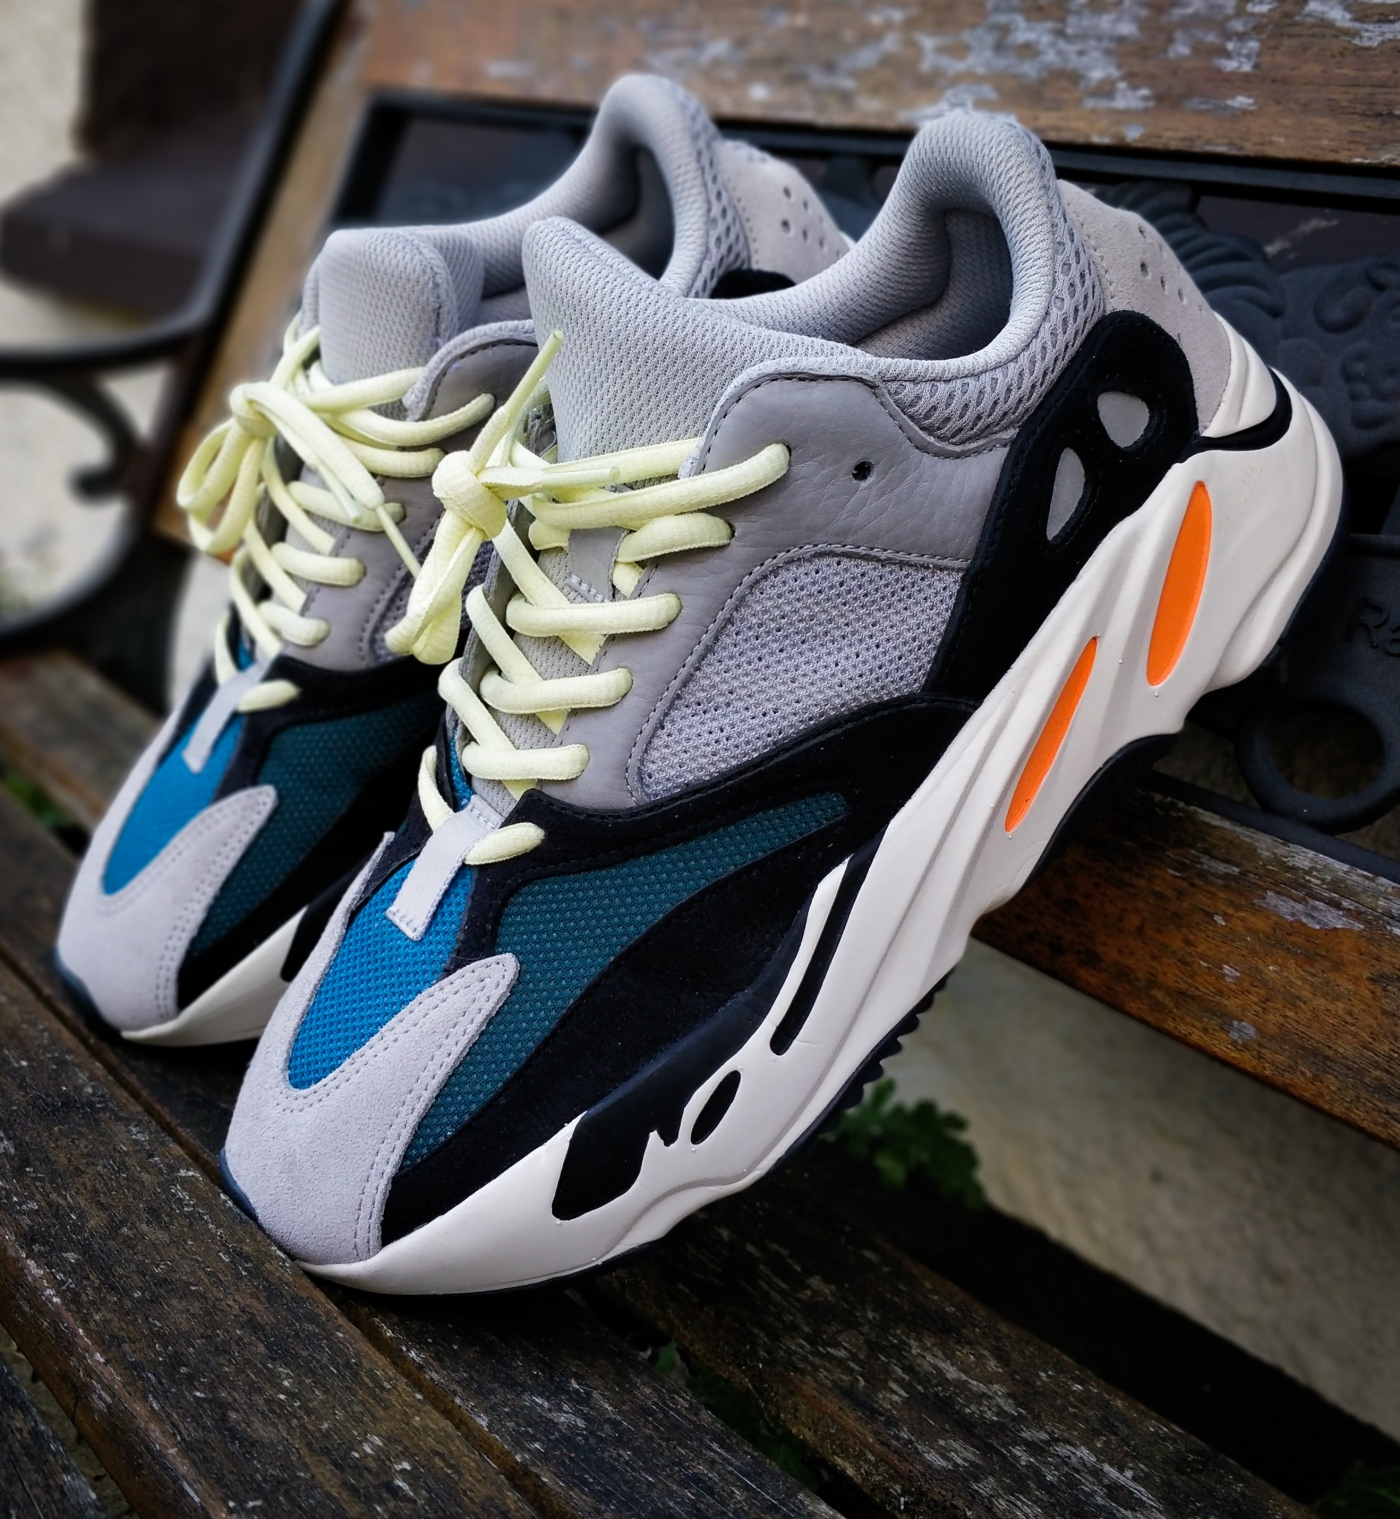 quality design 38071 9bfb2 The Dad Of Dad Shoes? – Yeezy 700 'Wave Runner' Up Close ...